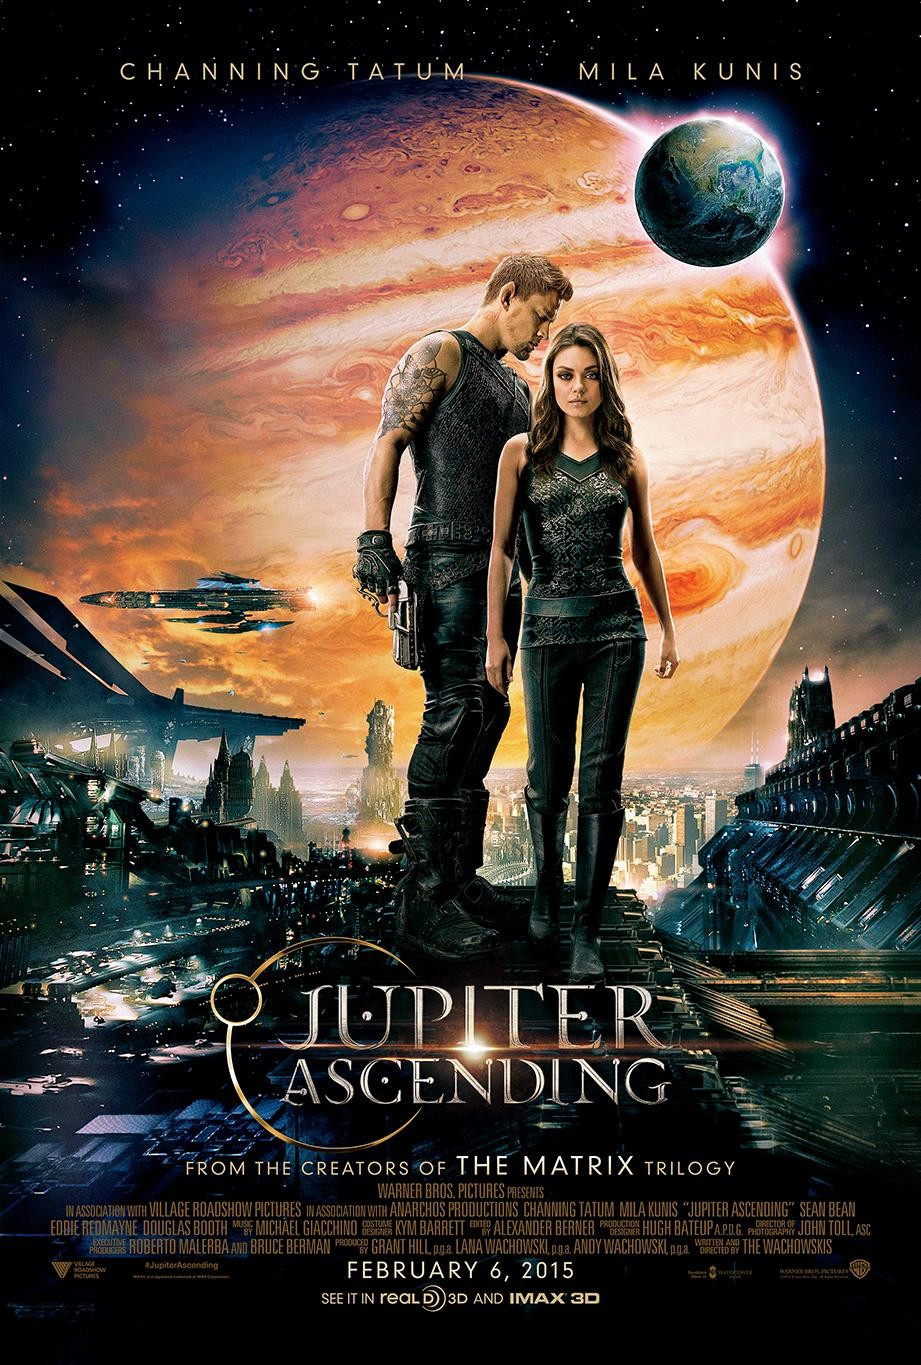 Перейти к просмотру Восхождение Юпитер / Jupiter Ascending (2015) BDRip 1080p [HEVC] от Tigole